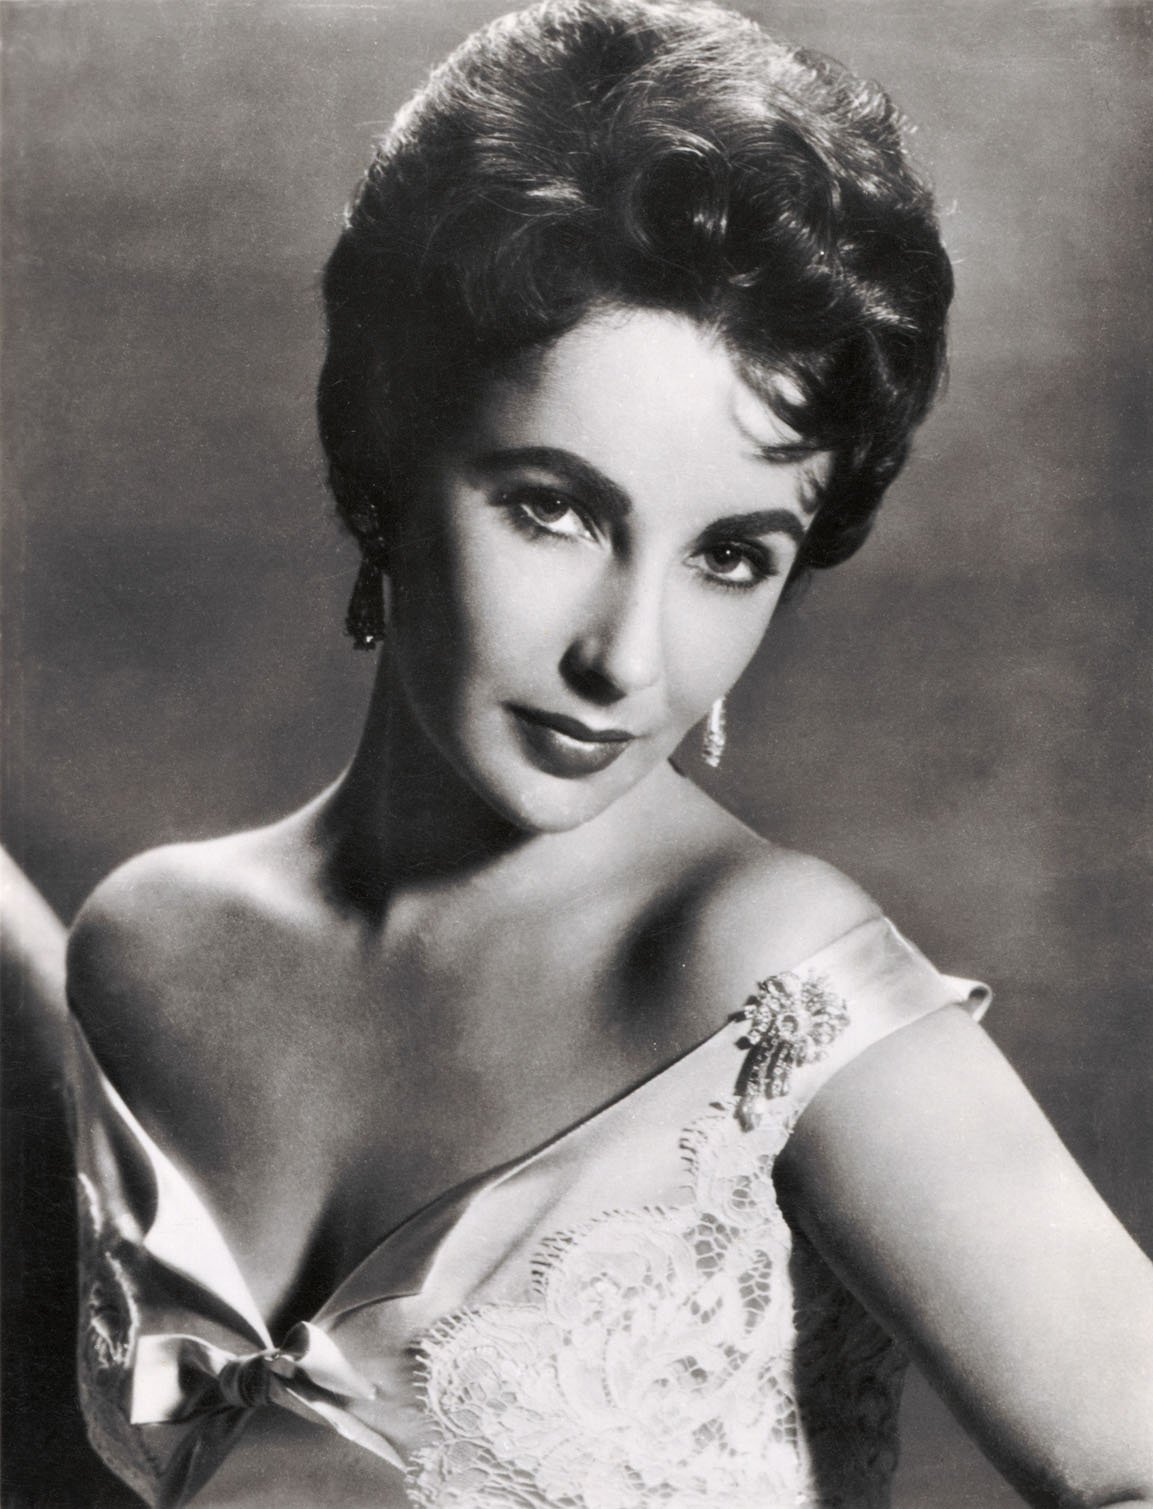 A portrait picture of Elizabeth Taylor during her early years as an actress. | Source: Getty Images.